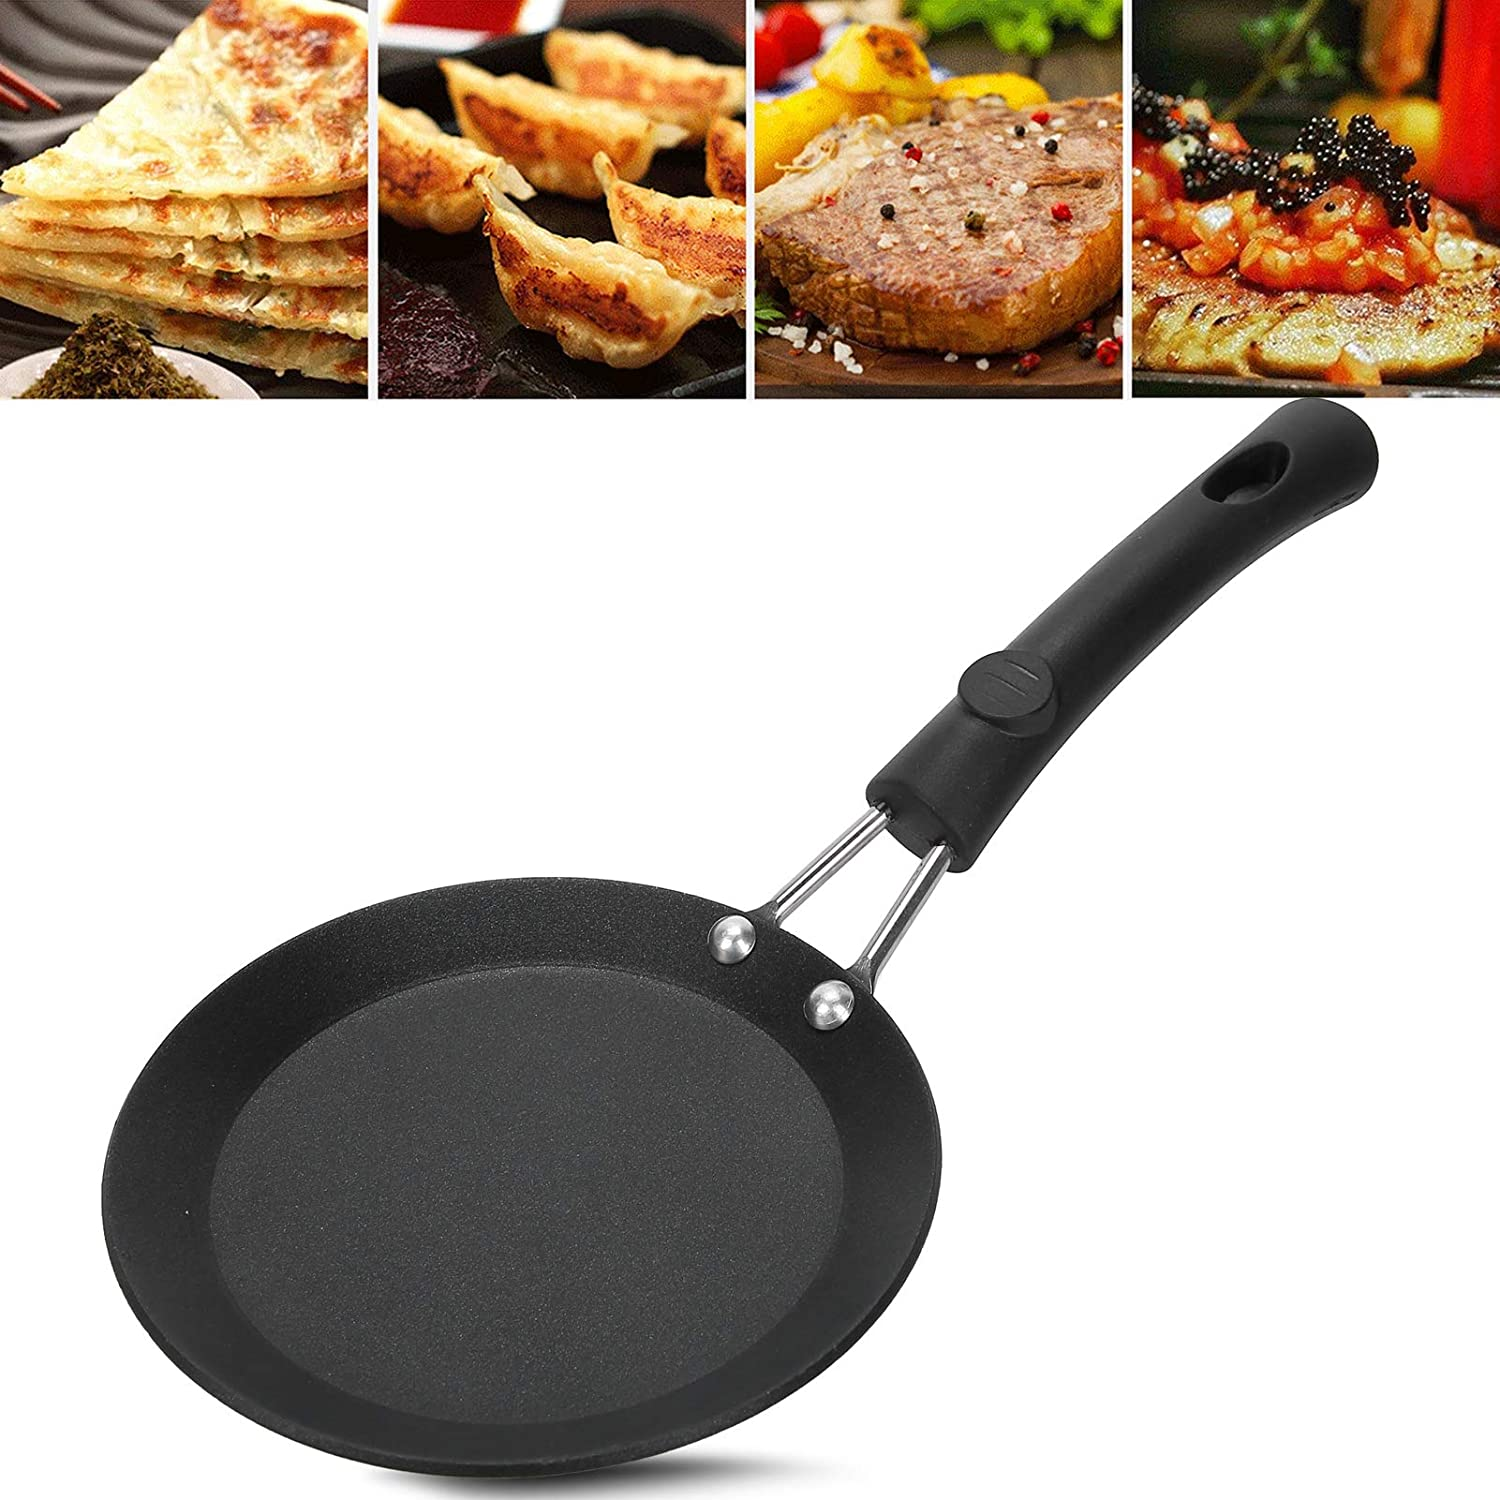 Eurobuy Pan Fried Egg Pancake Cooking Kitchen for Pot Home S Sale Japan's largest assortment